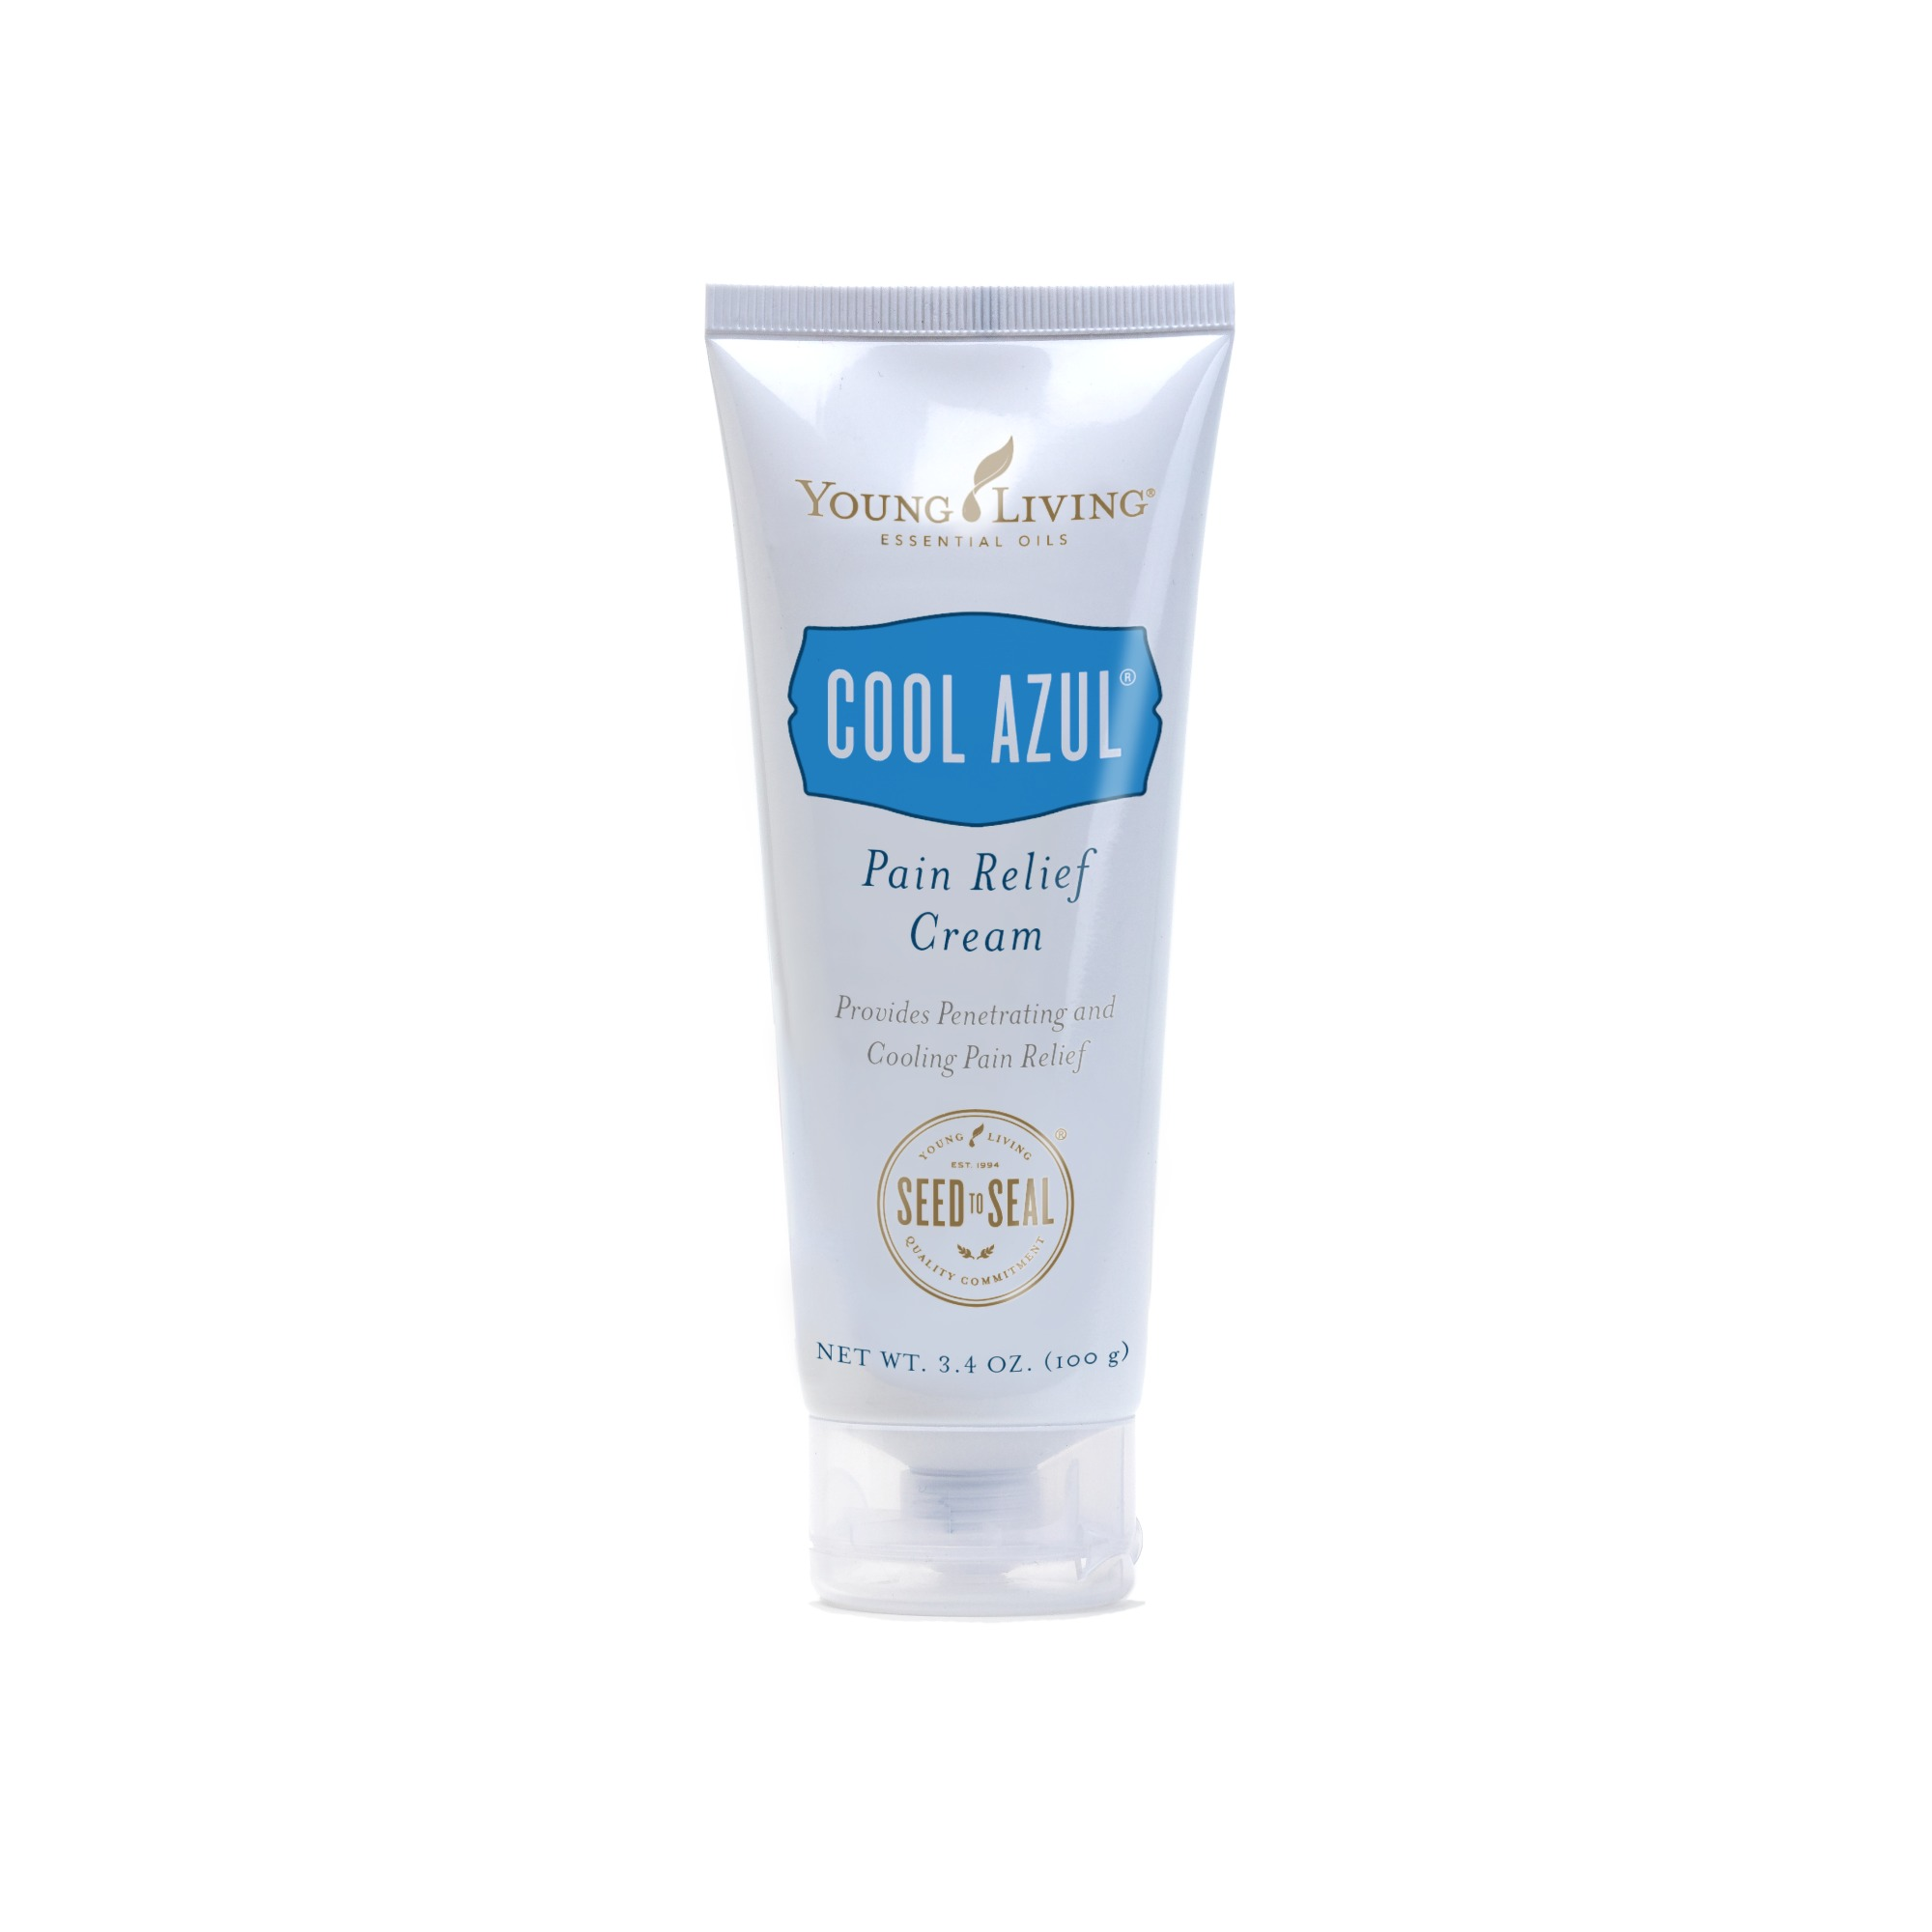 COOL AZUL PAIN RELIEF CREAM    This cream is perfect to accompany you in the great outdoors. Provides cooling relief from minor muscle and joint aches, arthritis, strains, bruises, and sprains. Great to use while camping, hiking, climbing, walking, or biking.   Click here   to learn more about this product.